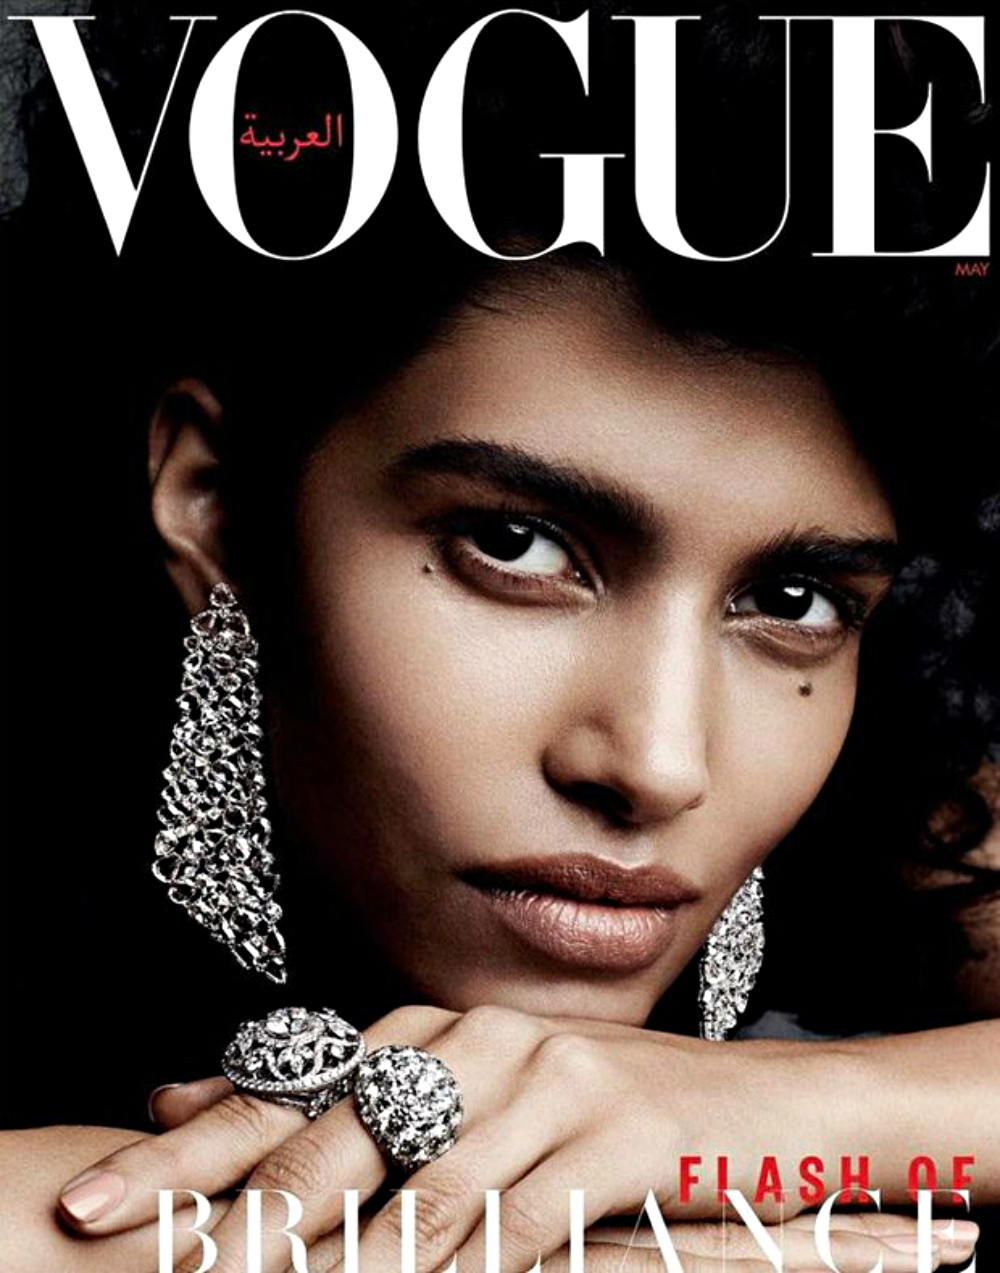 Luxury News: Vogue Arabia's May Issue Is Now Available vogue arabia's may issue Luxury News: Vogue Arabia's May Issue Is Now Available Luxury News Vogue Arabias May Issue Is Now Available